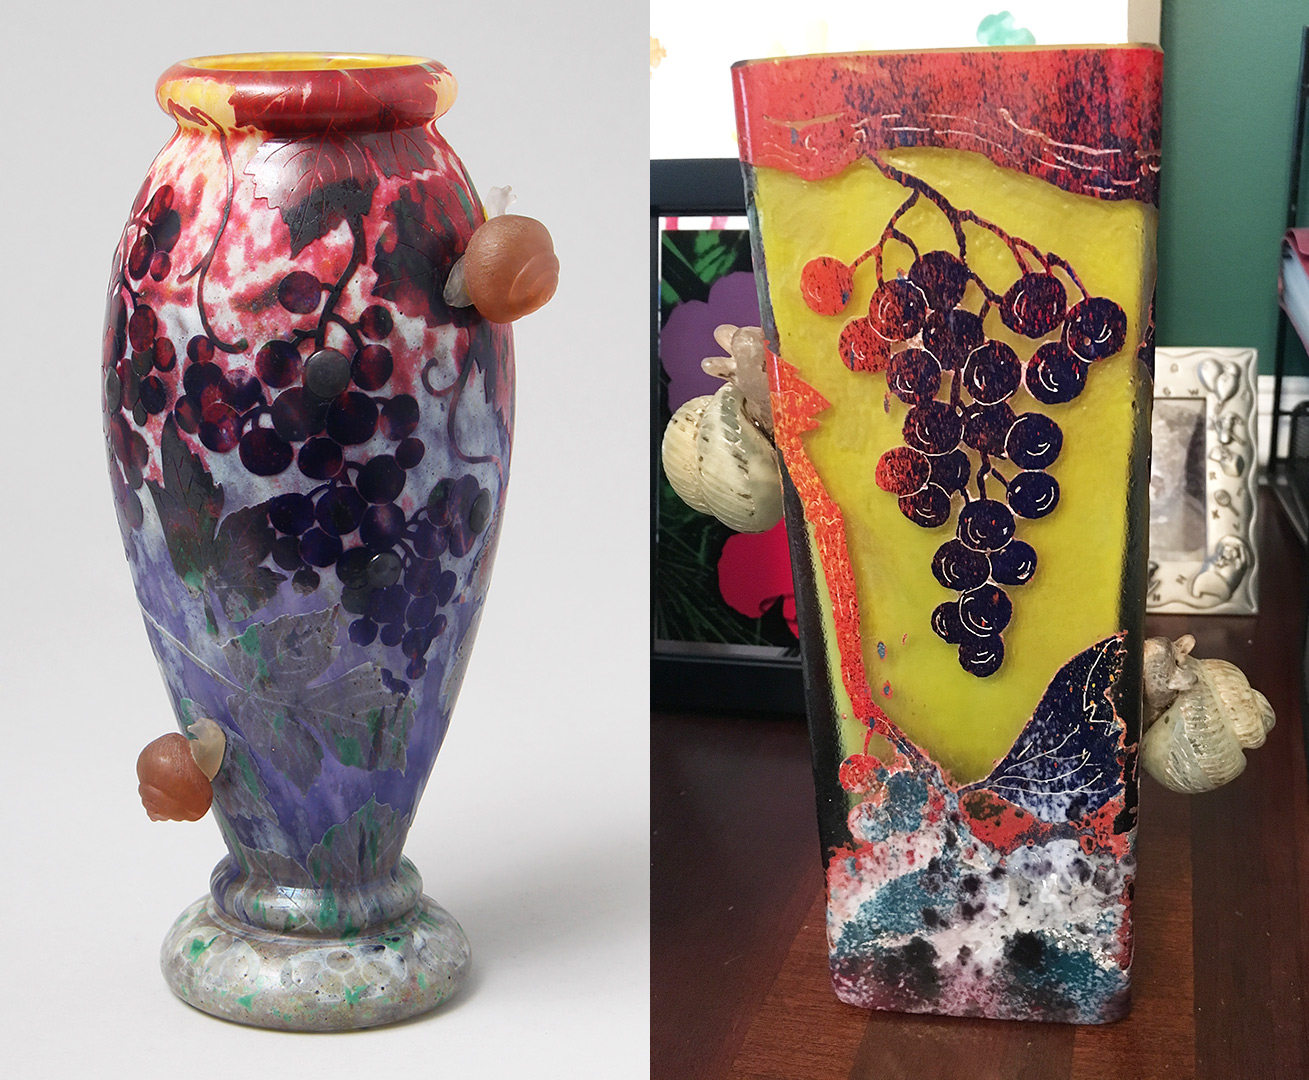 Which vase is fake?